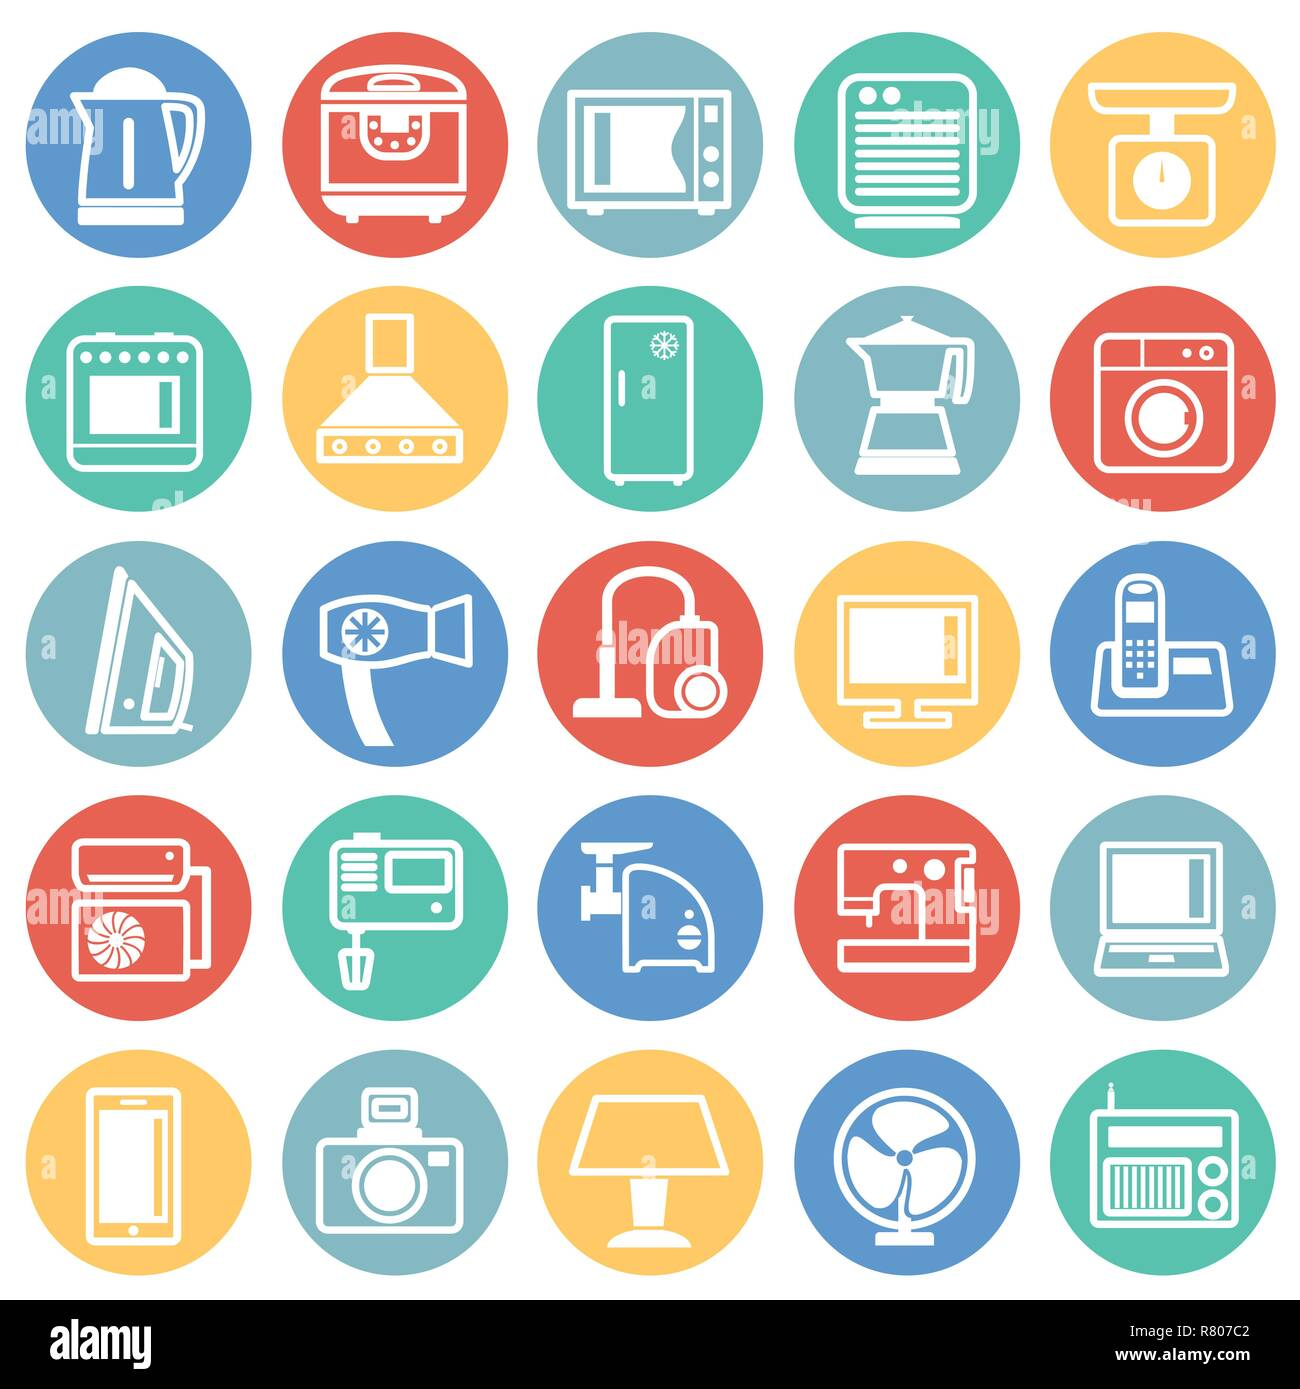 Home appliance icons set on color circles background for